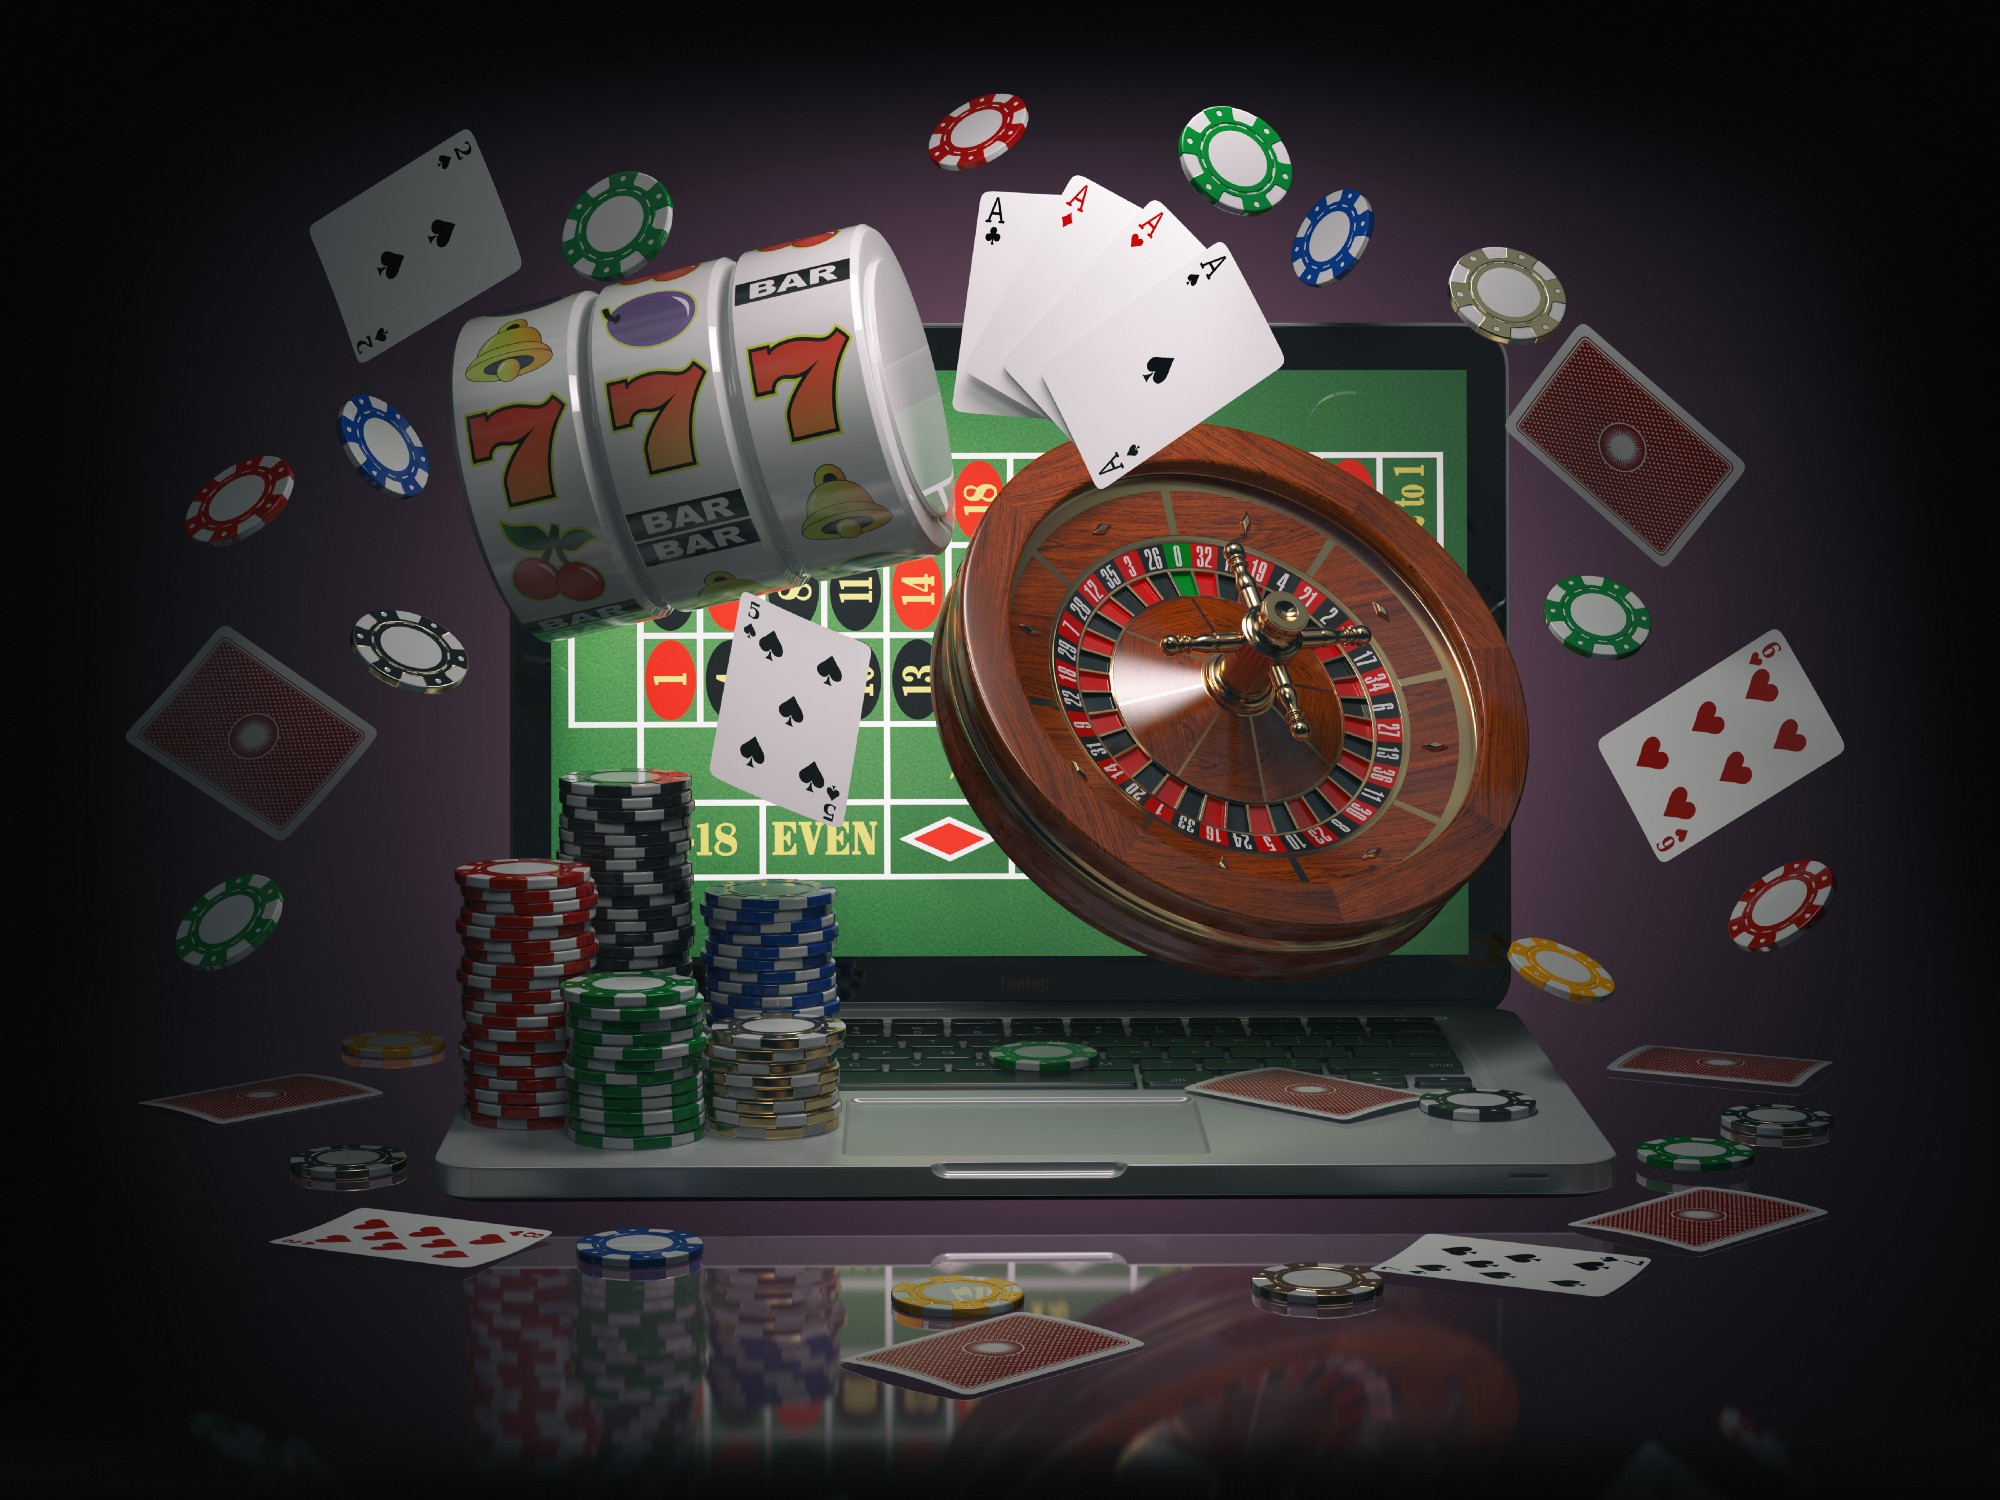 WHY PLAYERS CAN TRUST CASINO U.S